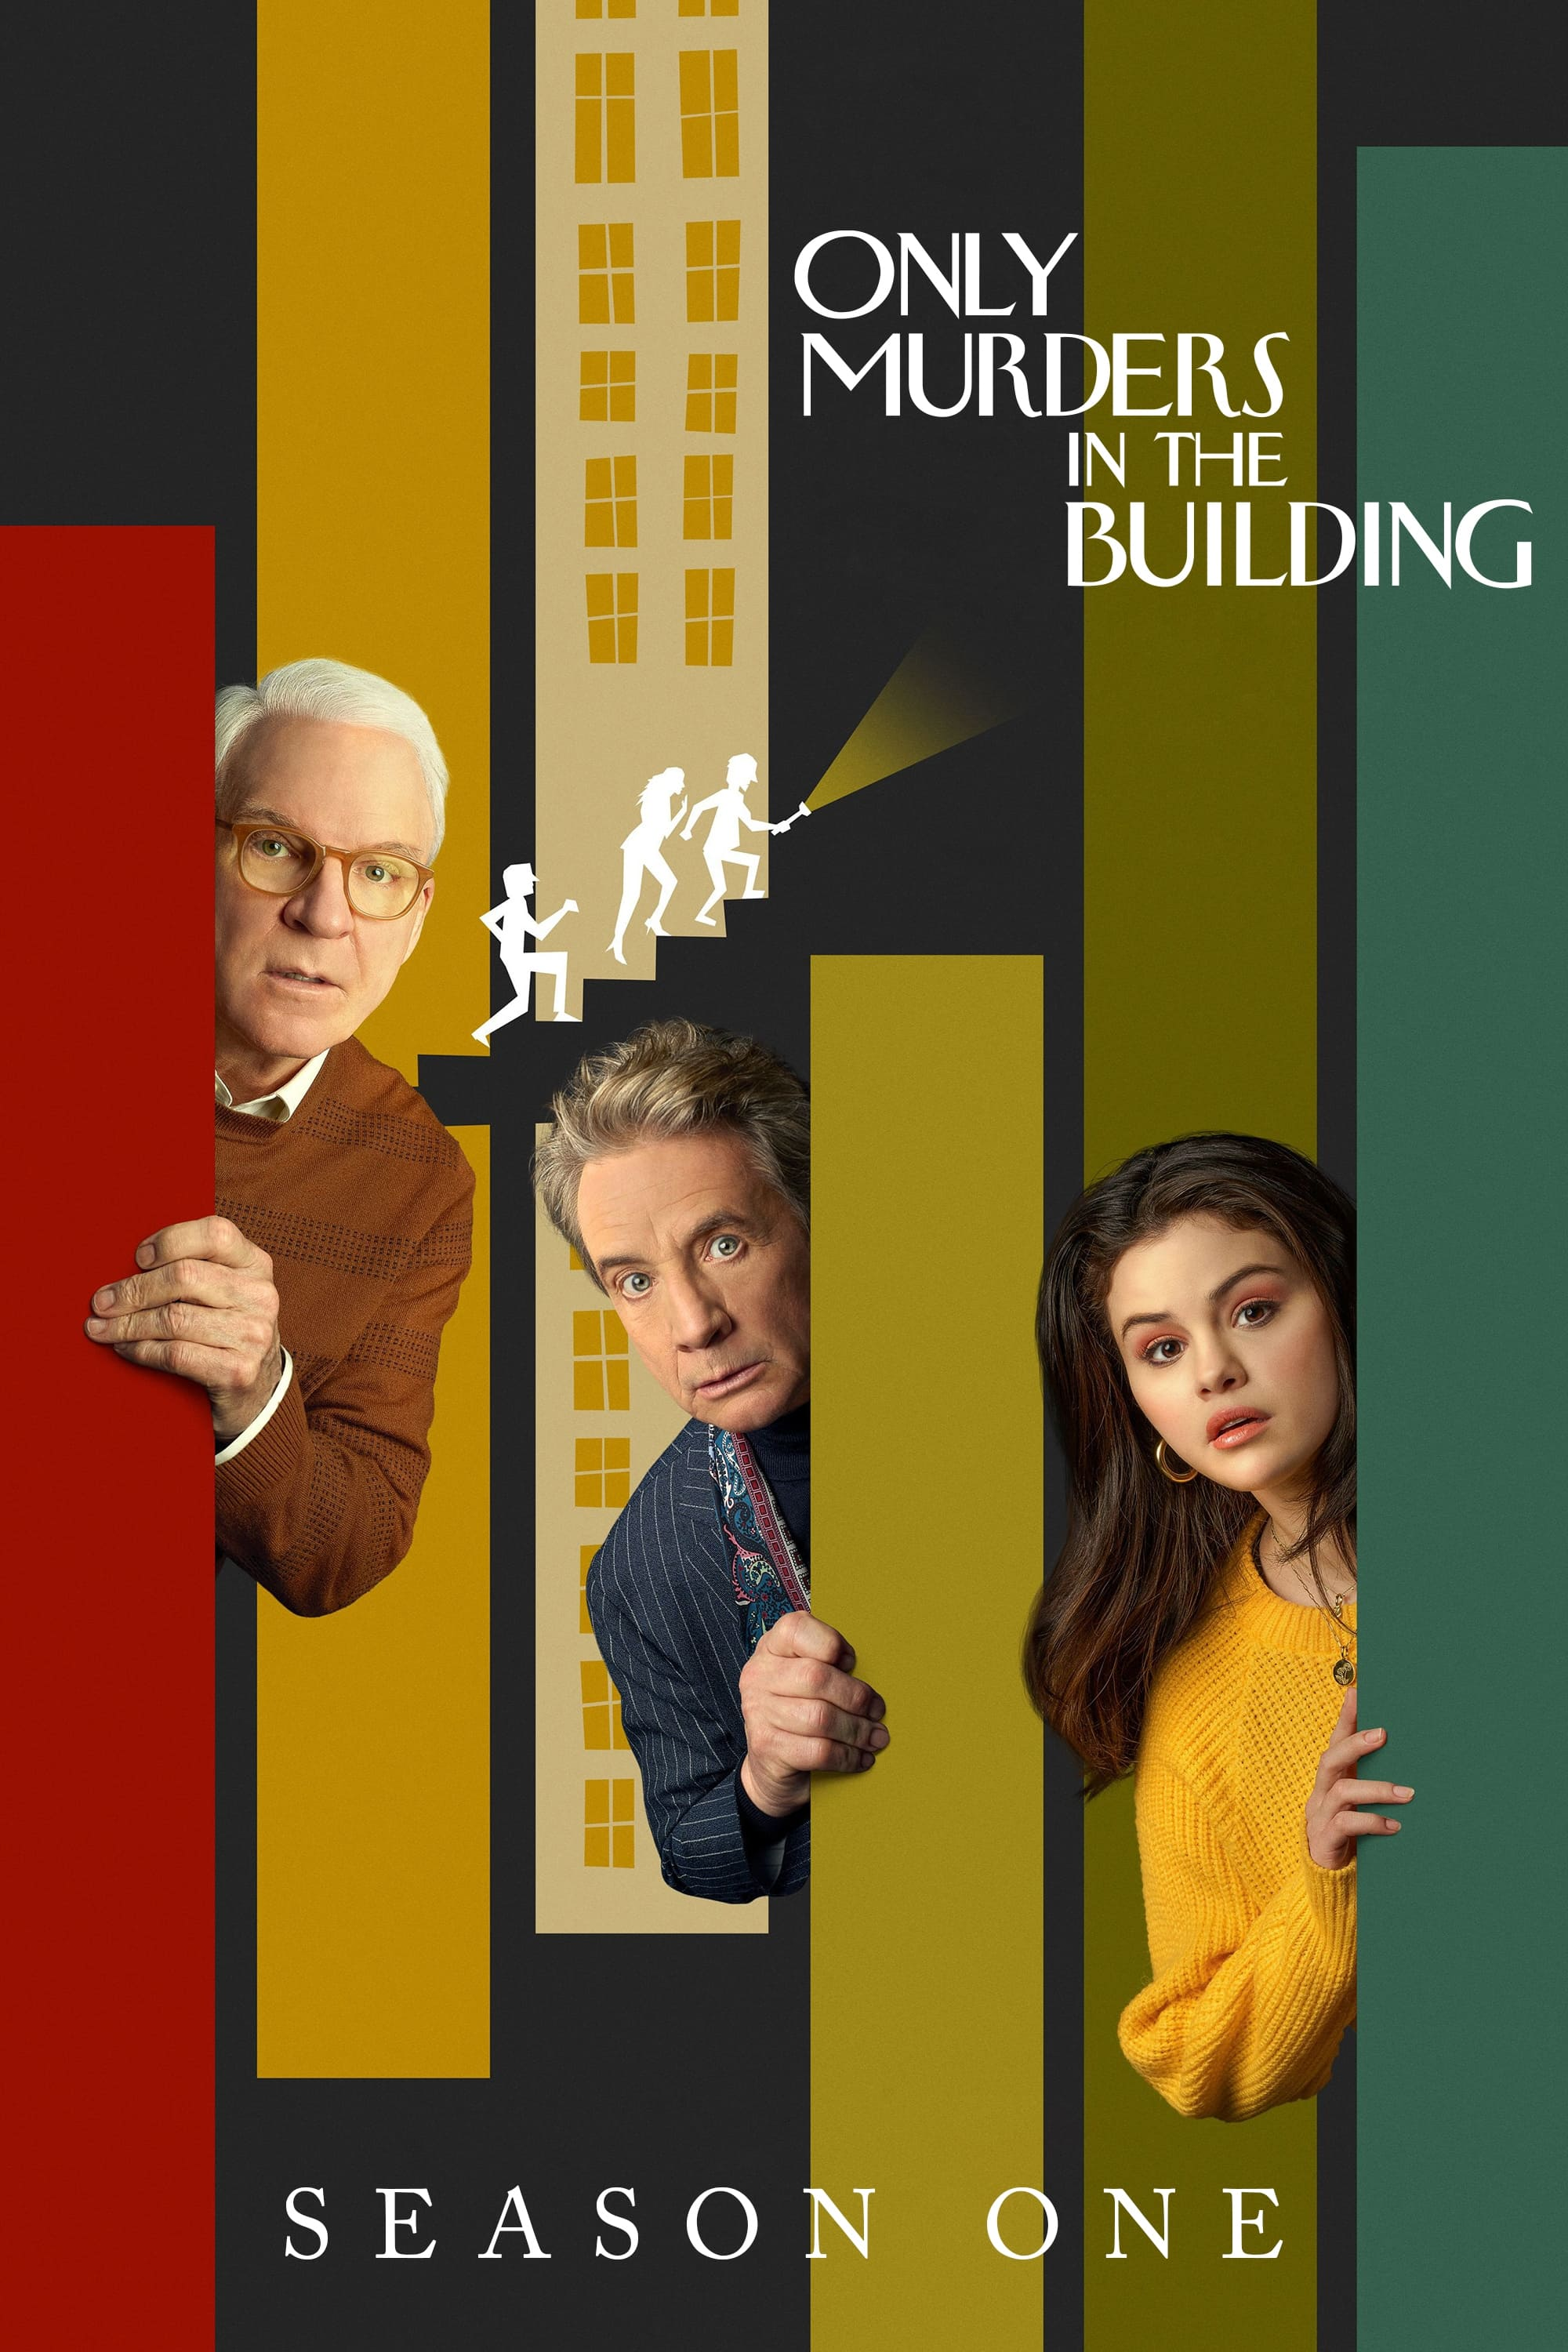 Only Murders in the Building Season 1